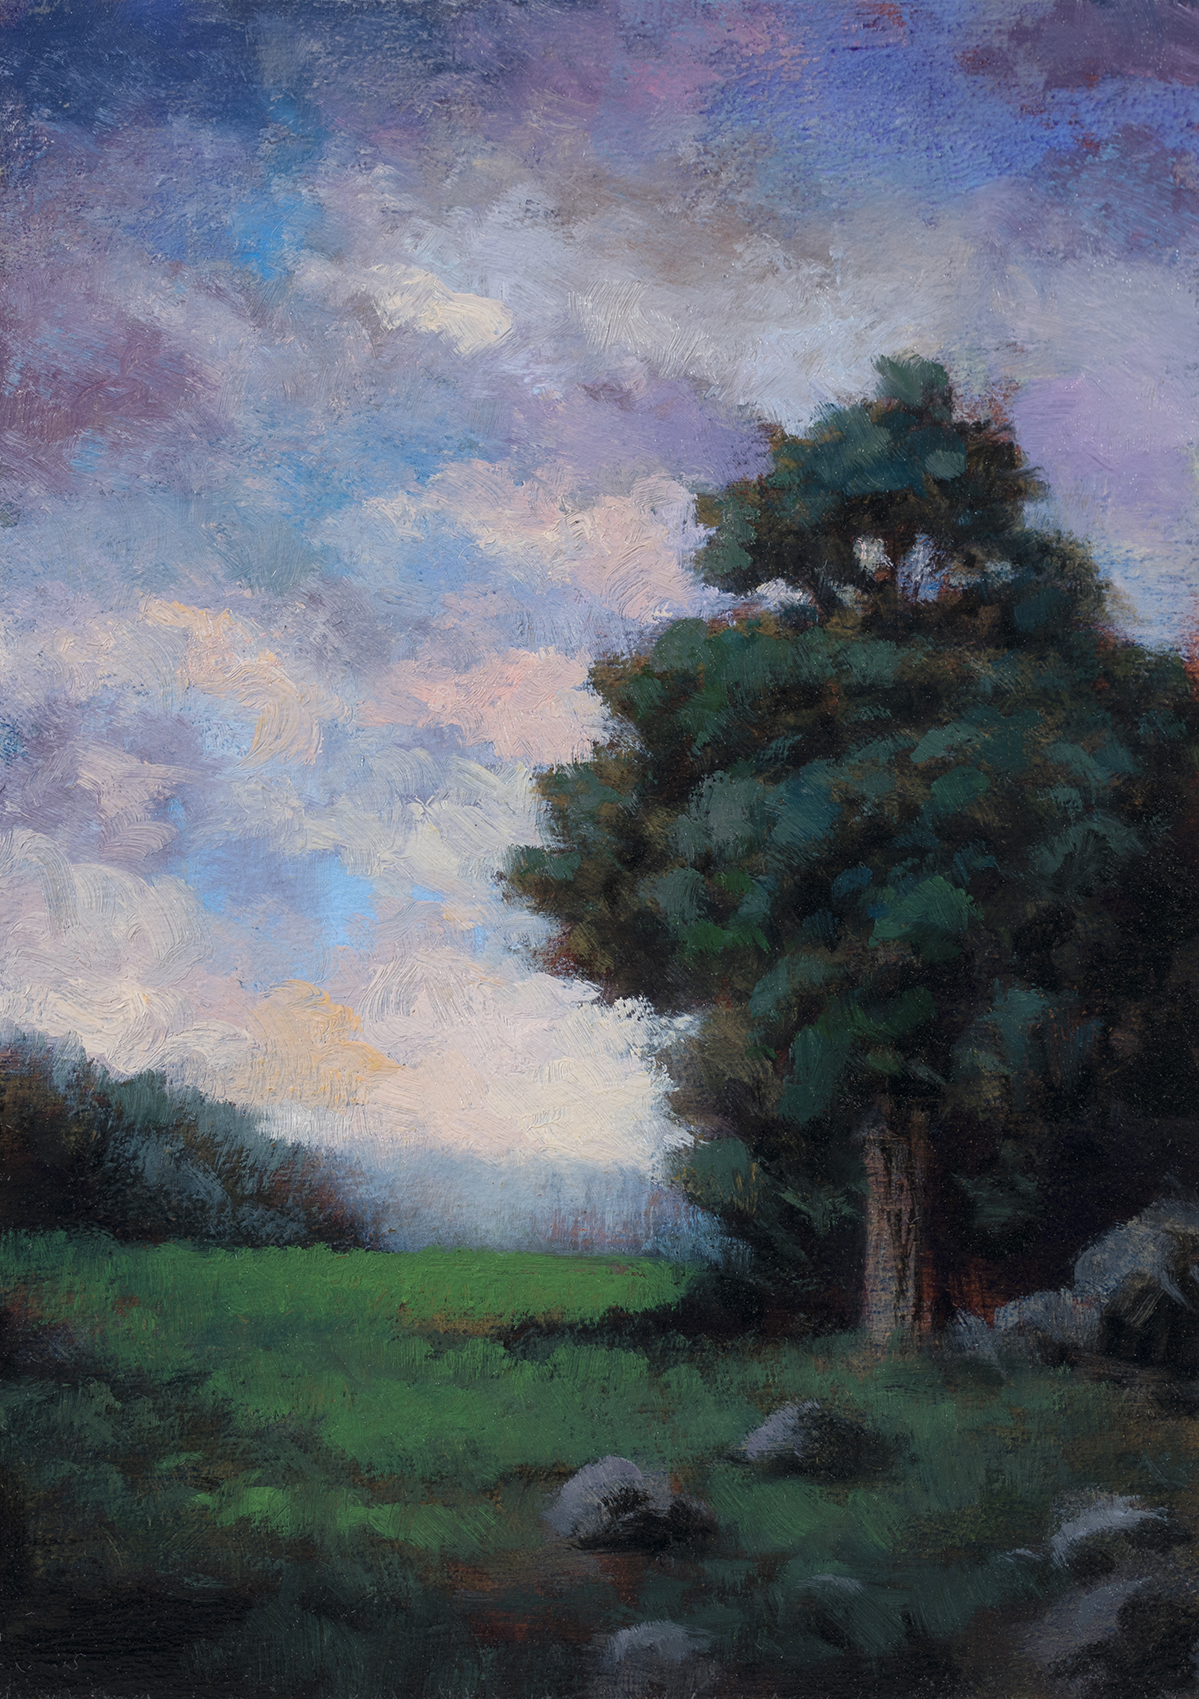 Meadow at Twilight  by M Francis McCarthy - 5x7 Oil on Wood Panel